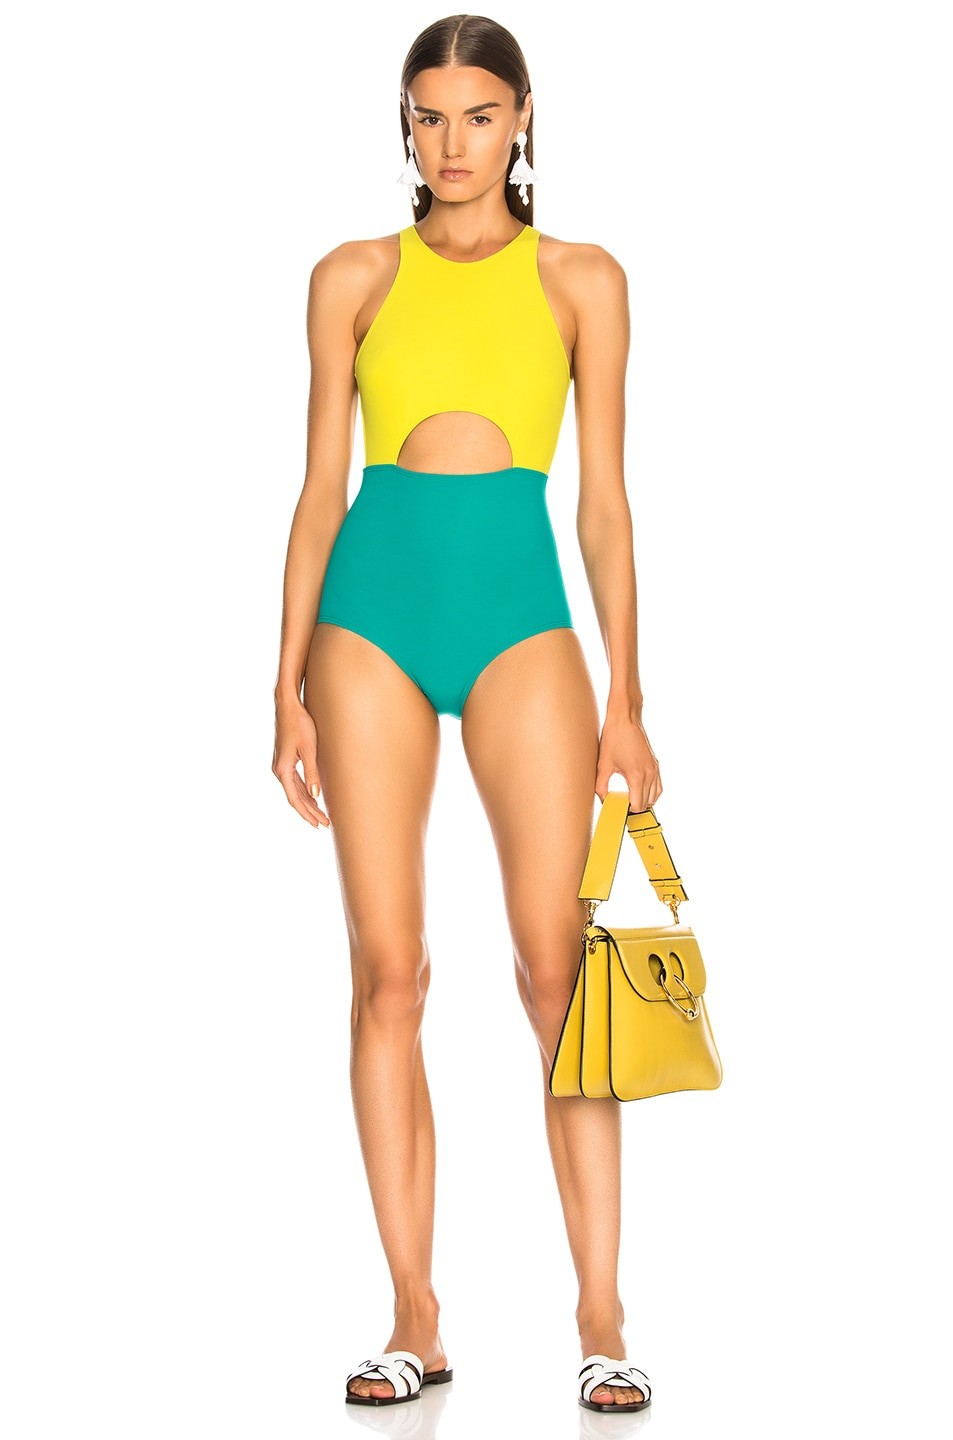 FLAGPOLE Vera Swimsuit in Green,Yellow